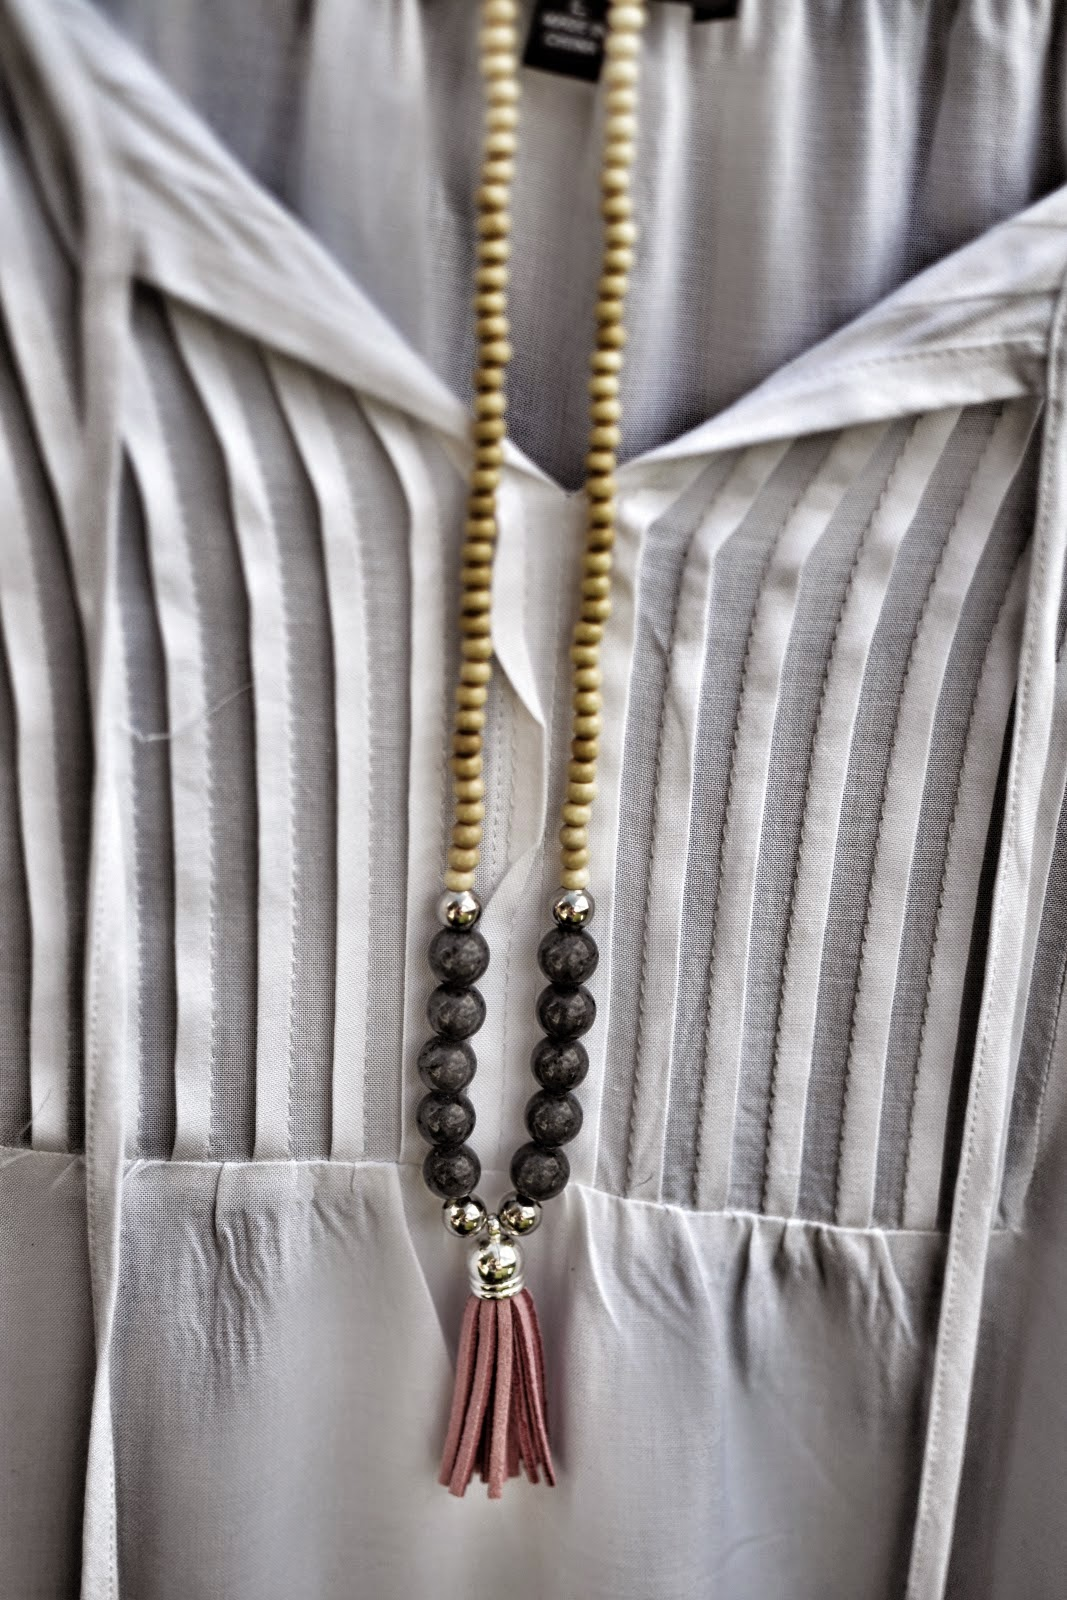 http://plentyofpaprika.blogspot.com/2014/07/4-easy-and-stylish-diy-necklace-designs.html